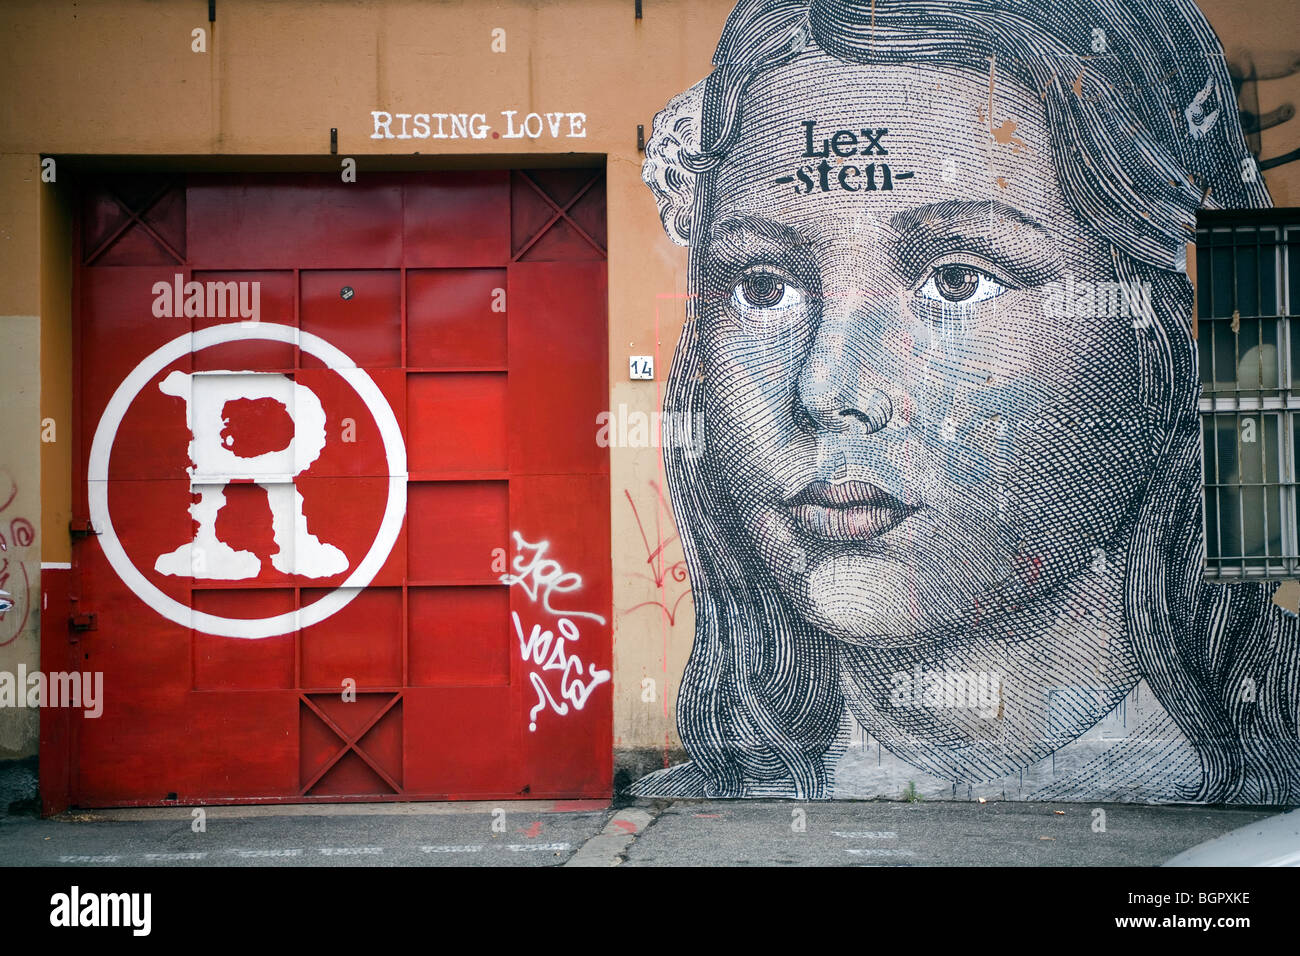 Augmentation de l'amour de l'écriture graffiti dessiner sur un mur de Rome, Italie Photo Stock